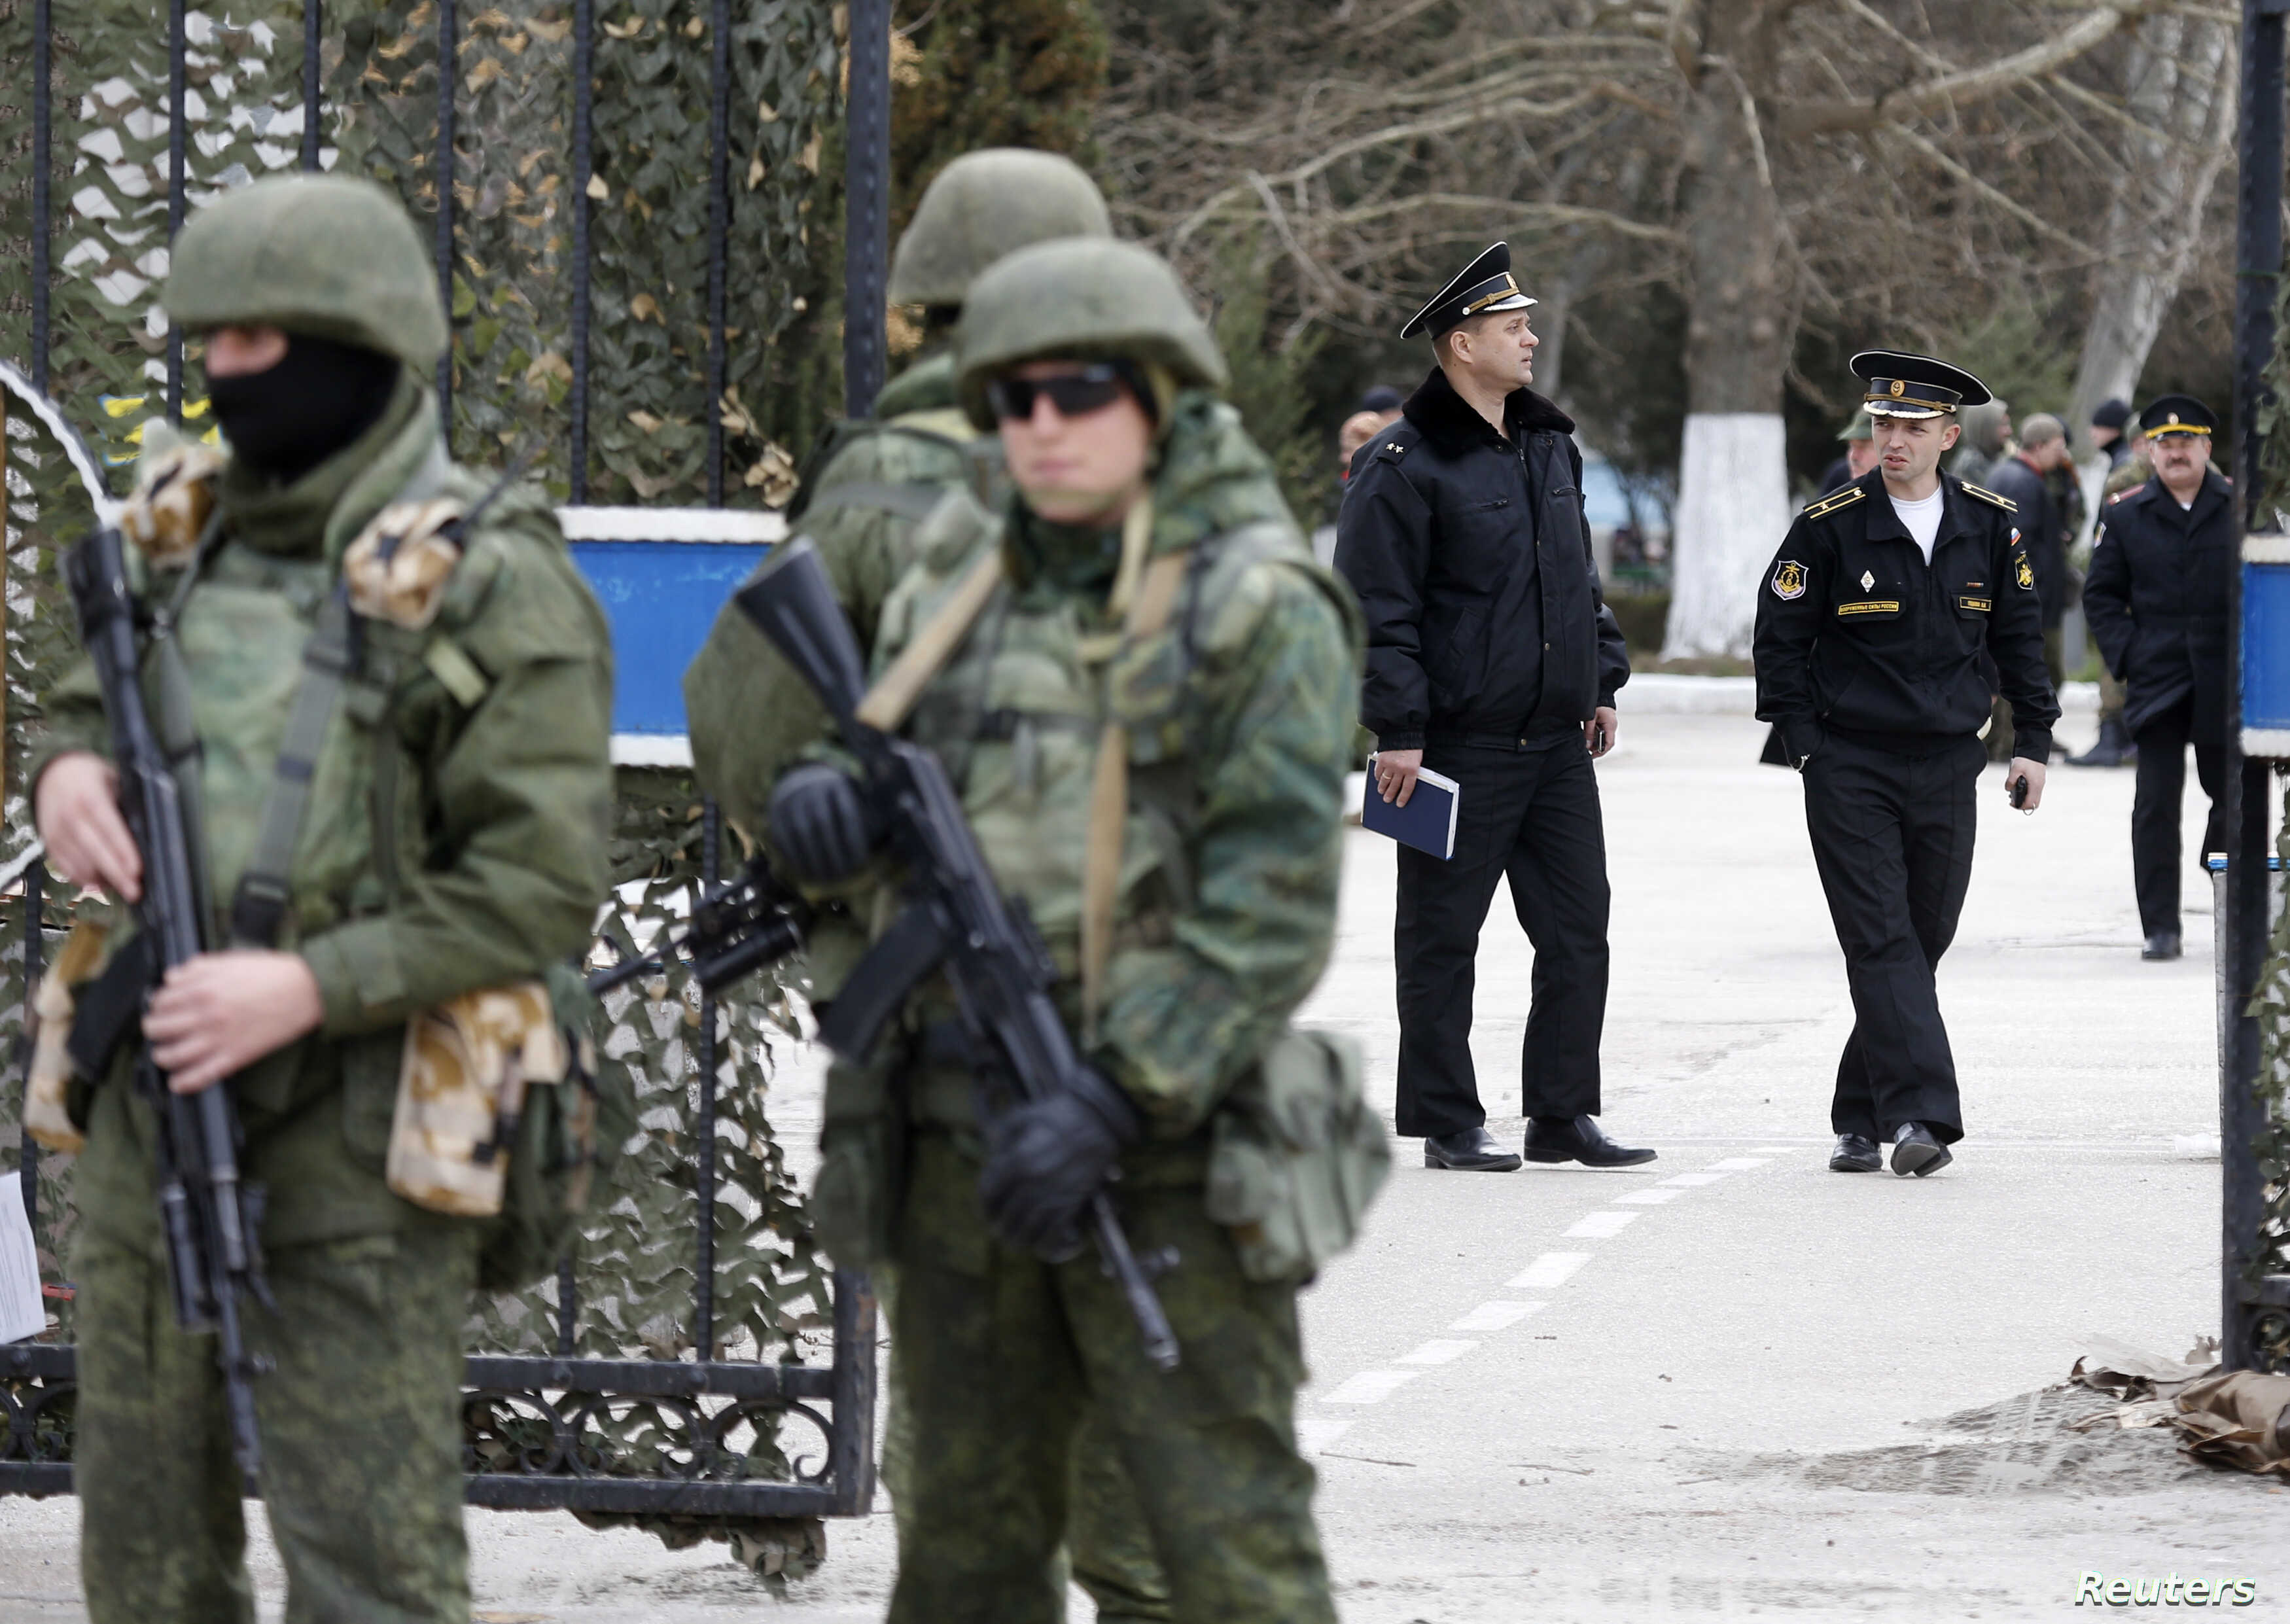 Armed men (L), believed to be Russian servicemen, stand guard outside Ukraine's naval headquarters after it was taken over by pro-Russian forces, as Russian naval officers (R) are seen in the background, in Sevastopol, March 19, 2014.